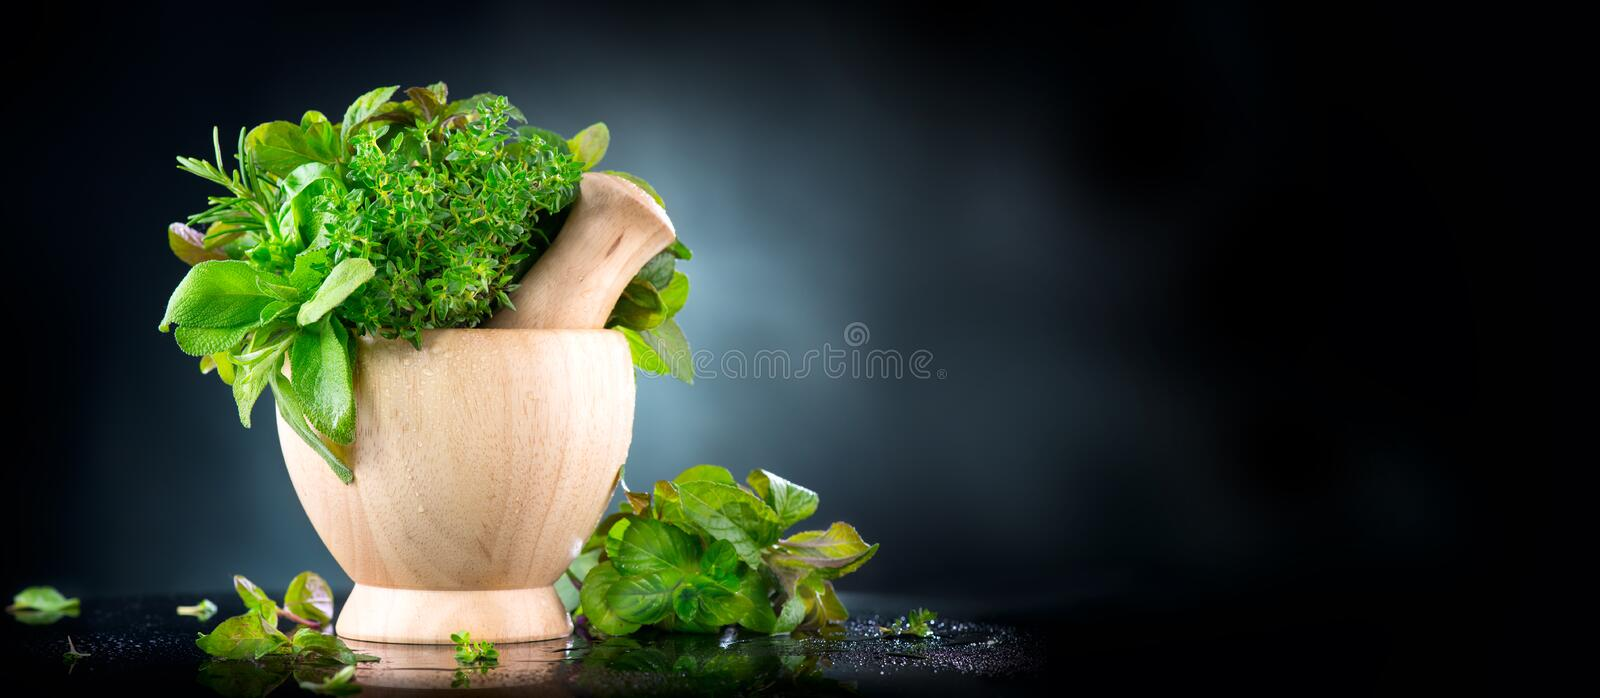 Herbs. Bunch of Fresh green organic aromatic herb leaves in wooden mortar with pestle over black background royalty free stock photo